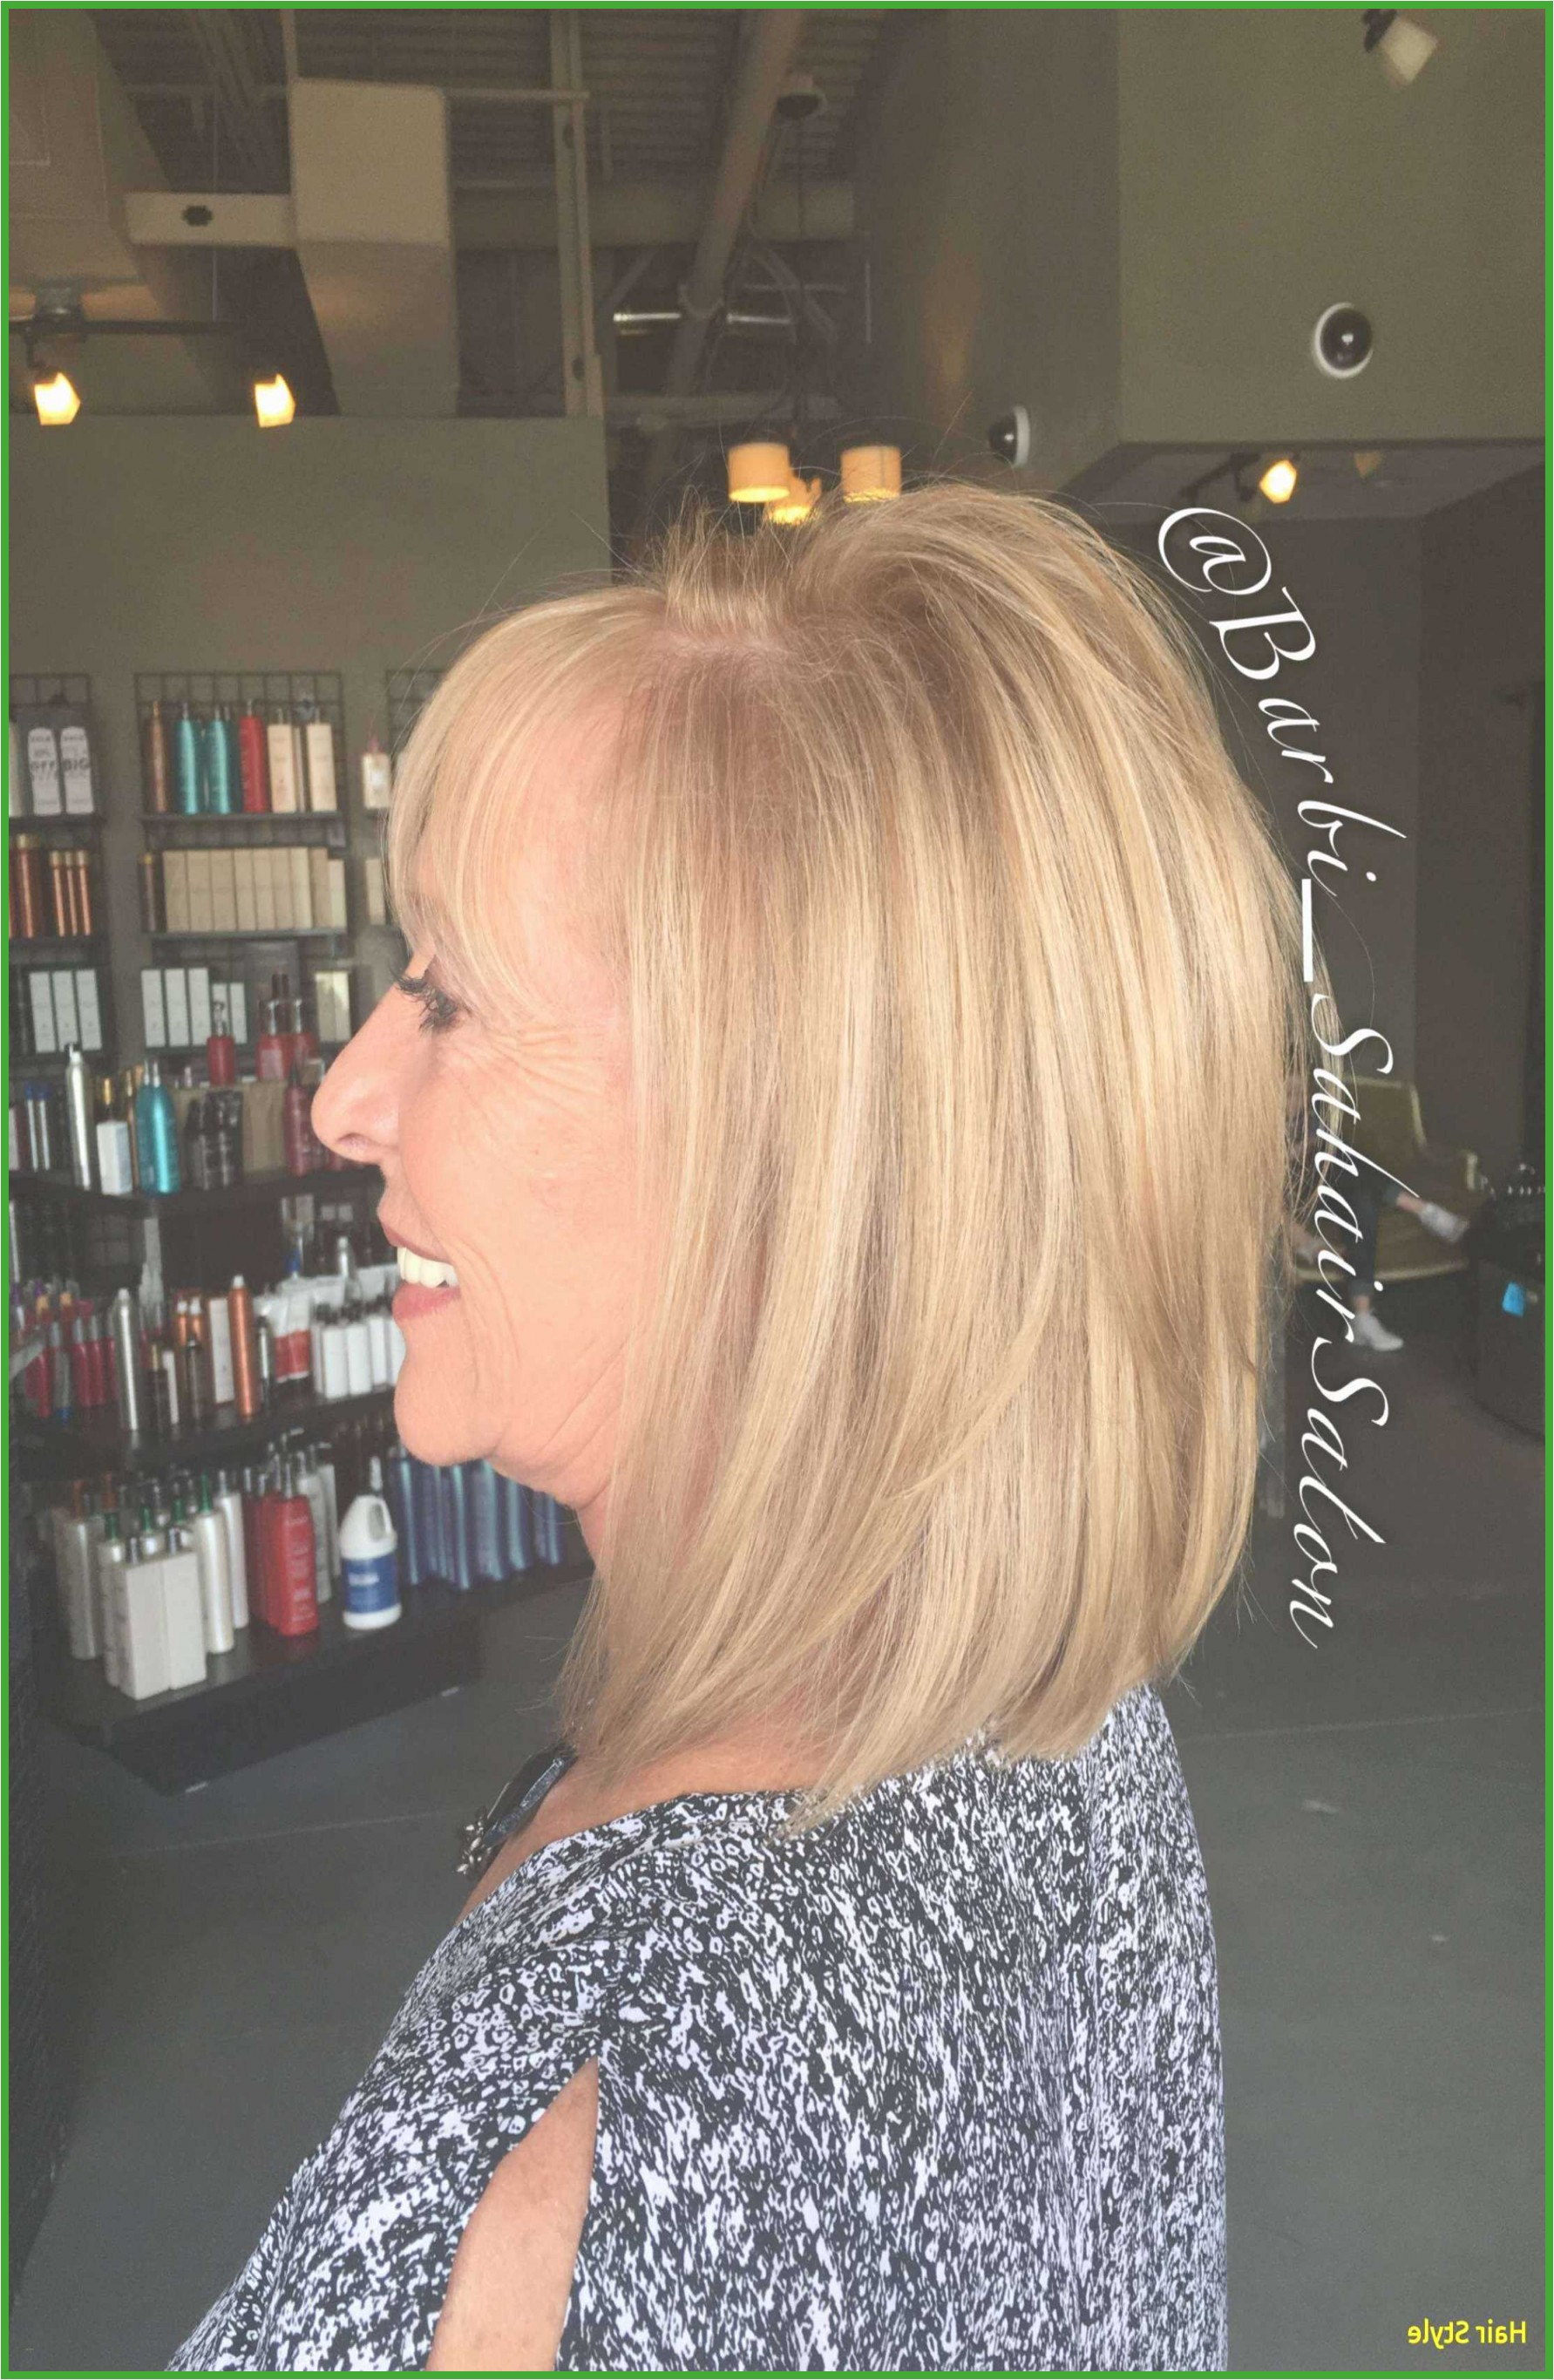 different types of short bob hairstyles beautiful elegant hairstyles for short hair with bangs and layers aidasmakeup of different types of short bob hairstyles